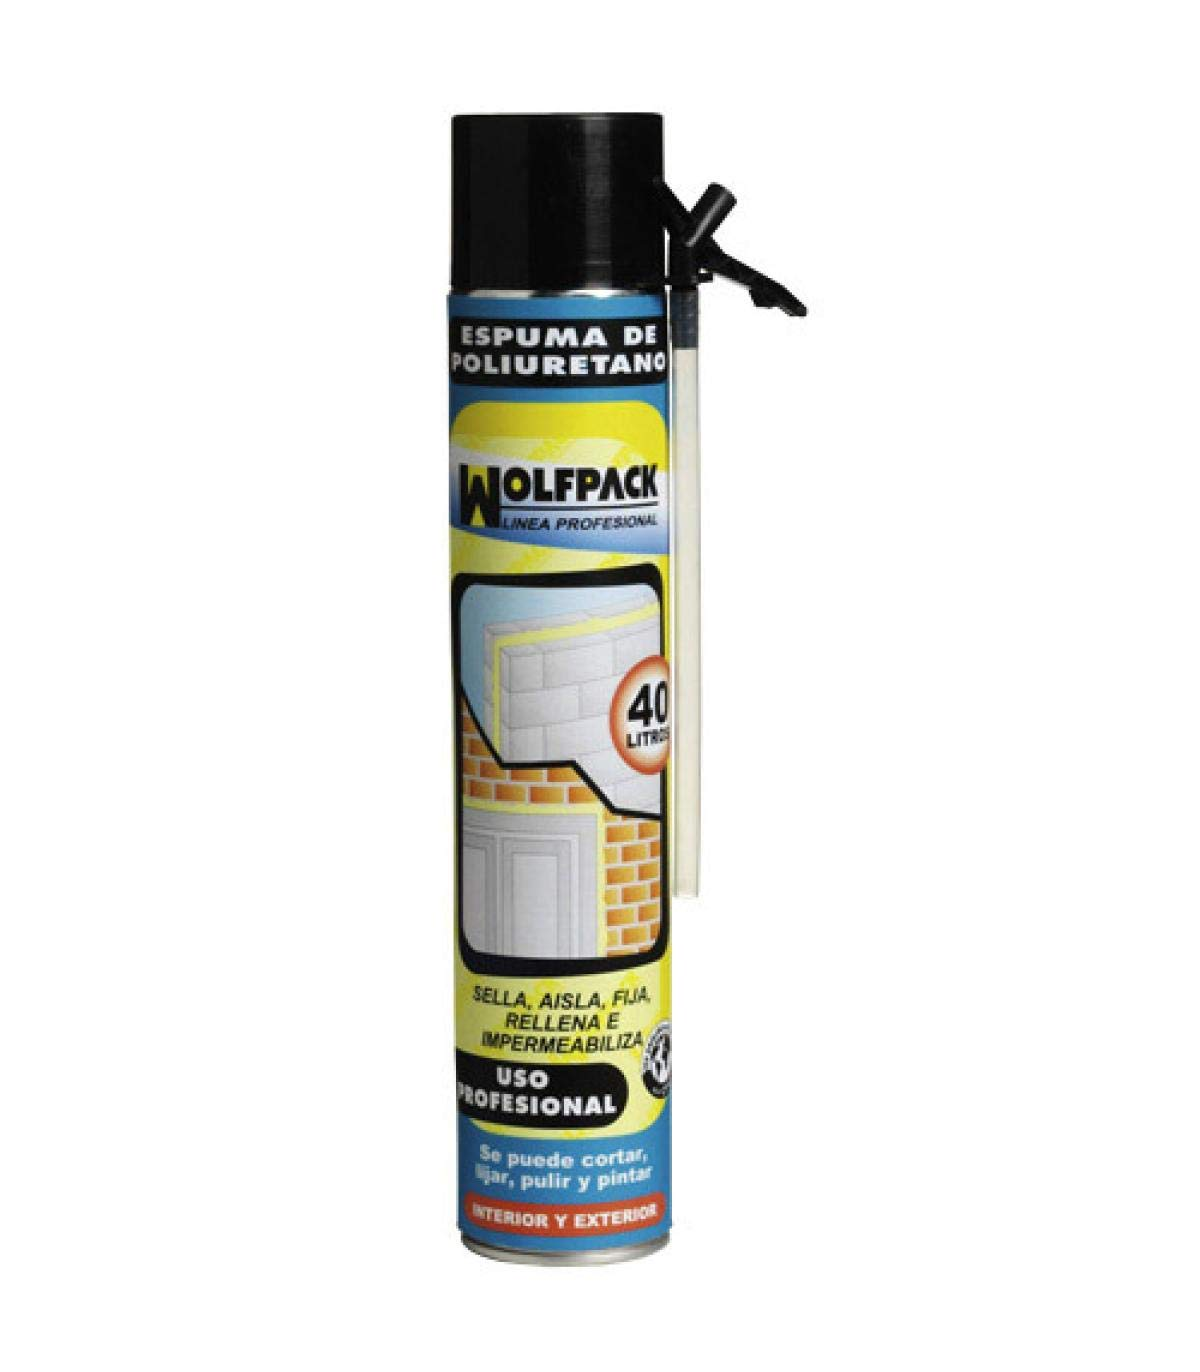 Espuma Poliuretano 750 ml. Con Canula: Amazon.es: Industria ...